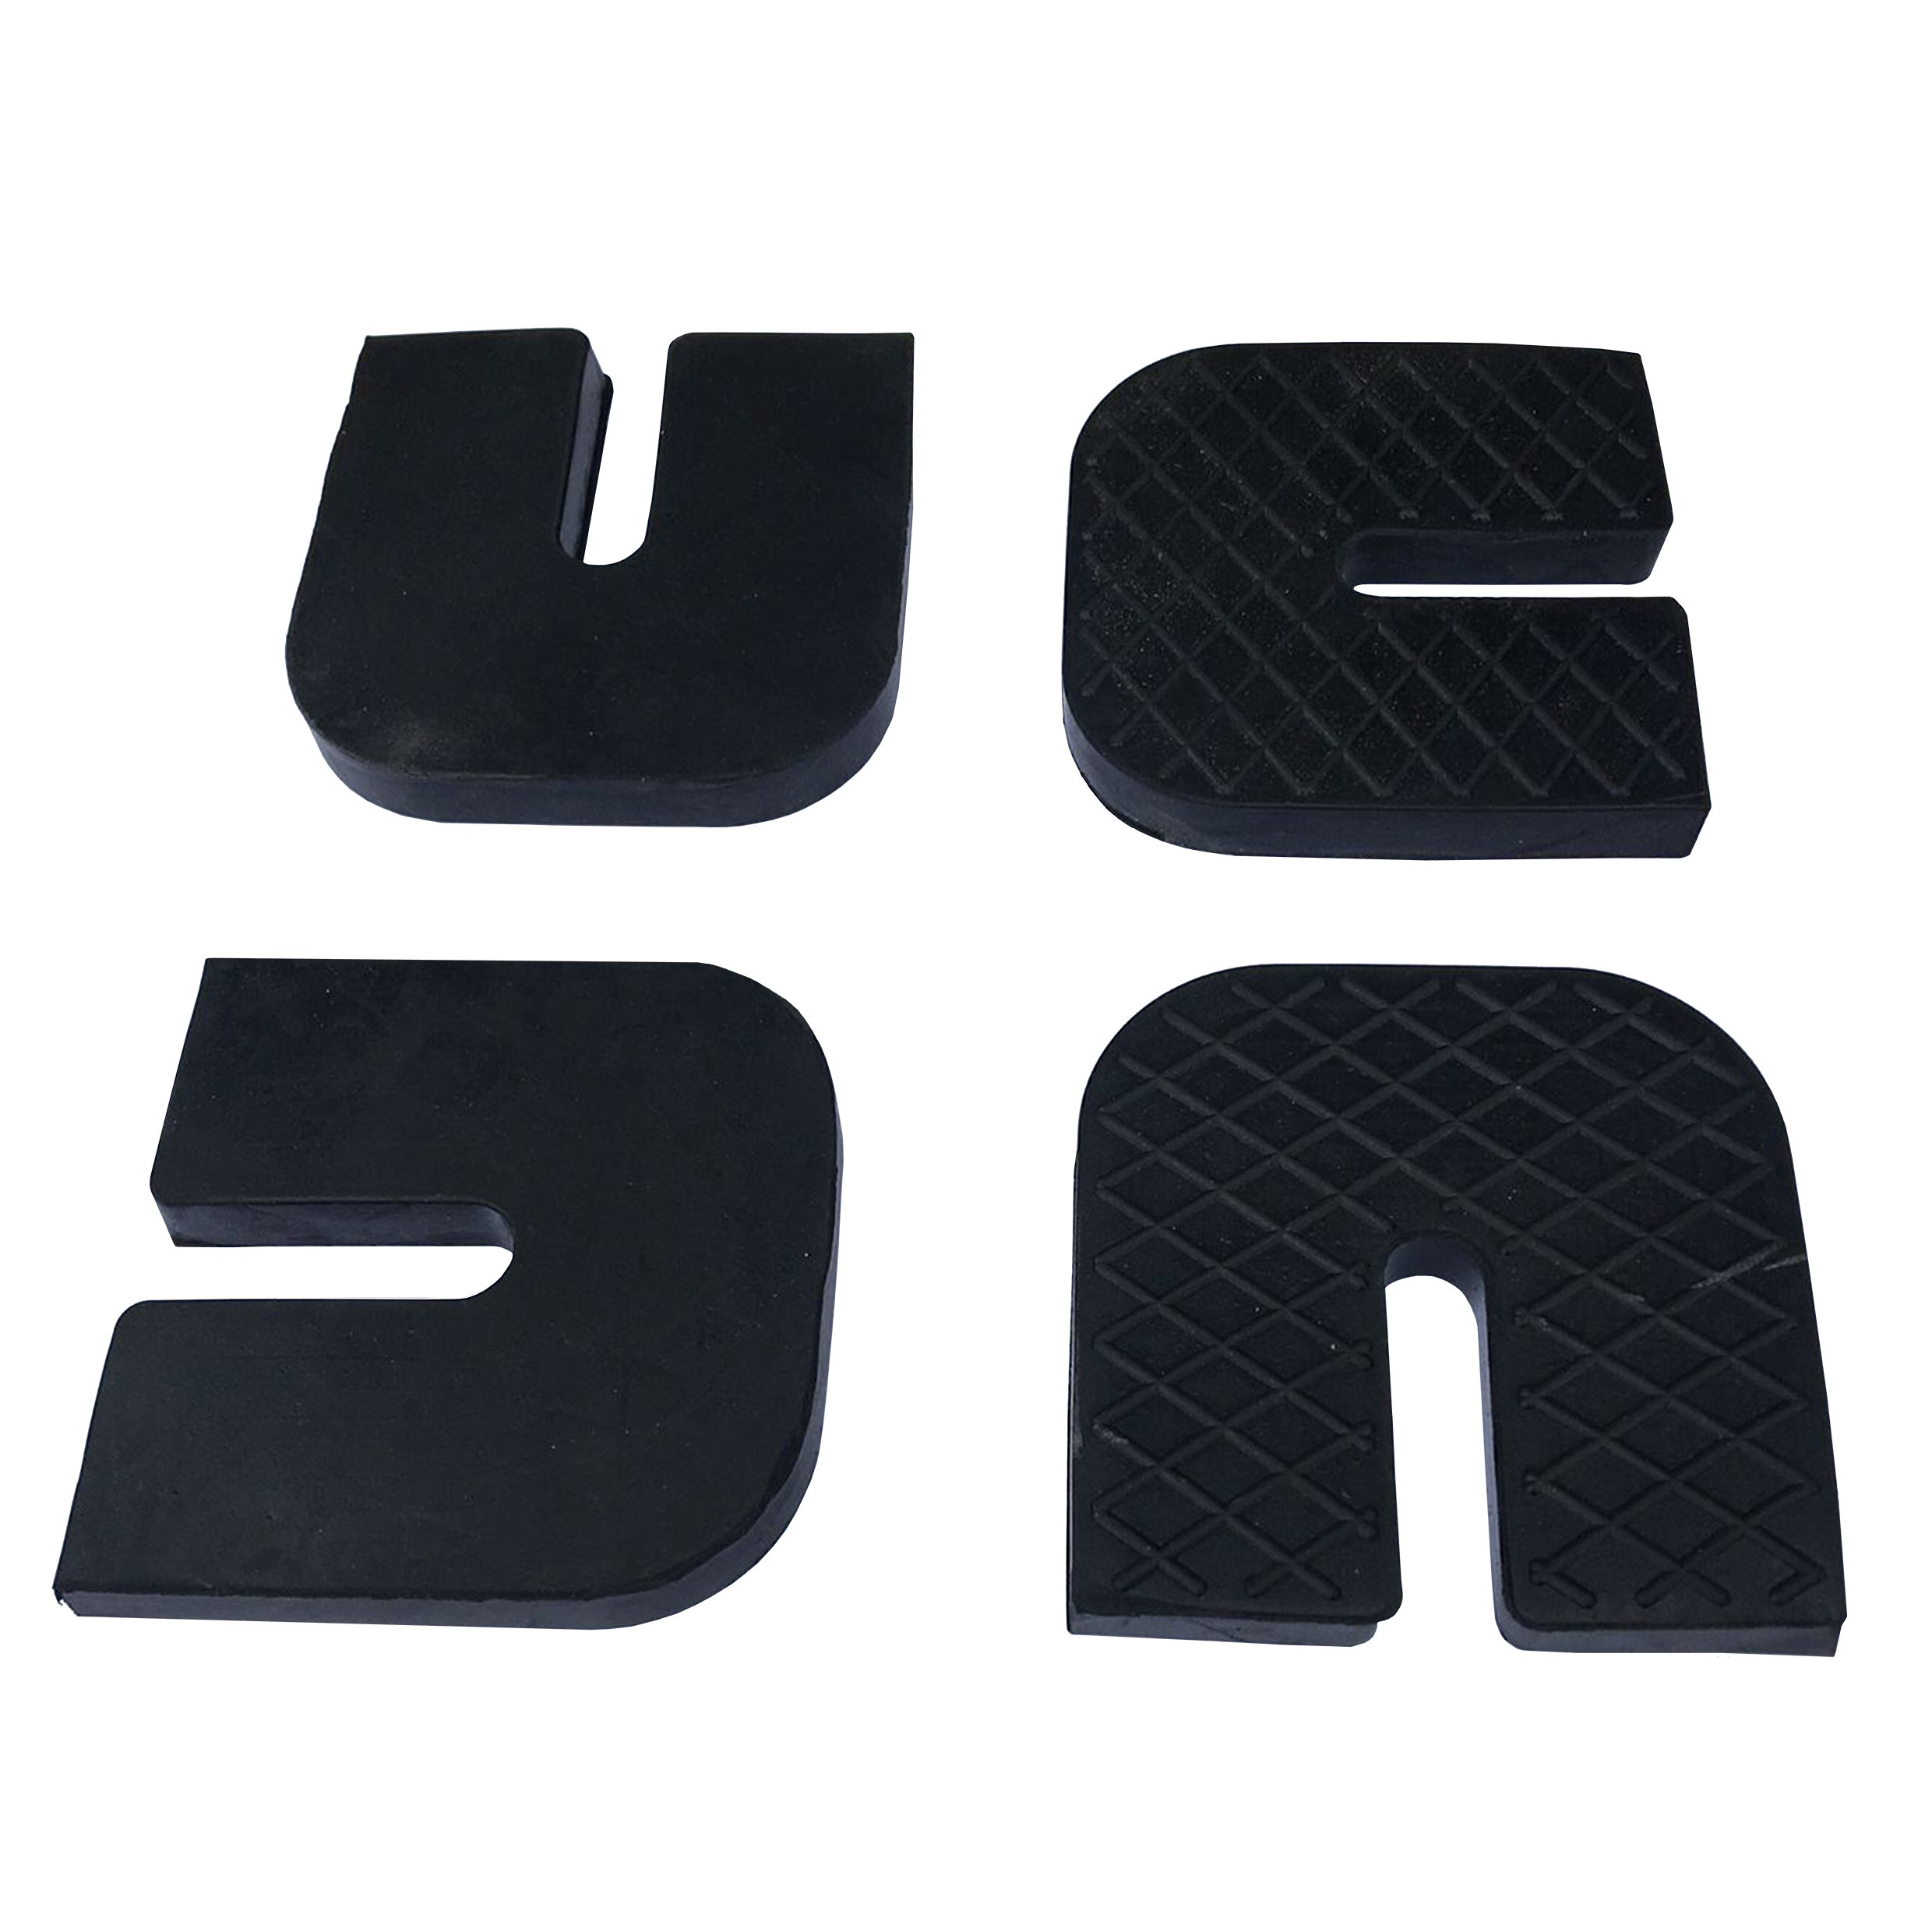 Rubber Isolator Pads Shock Absorber Anti-Vibration Pads